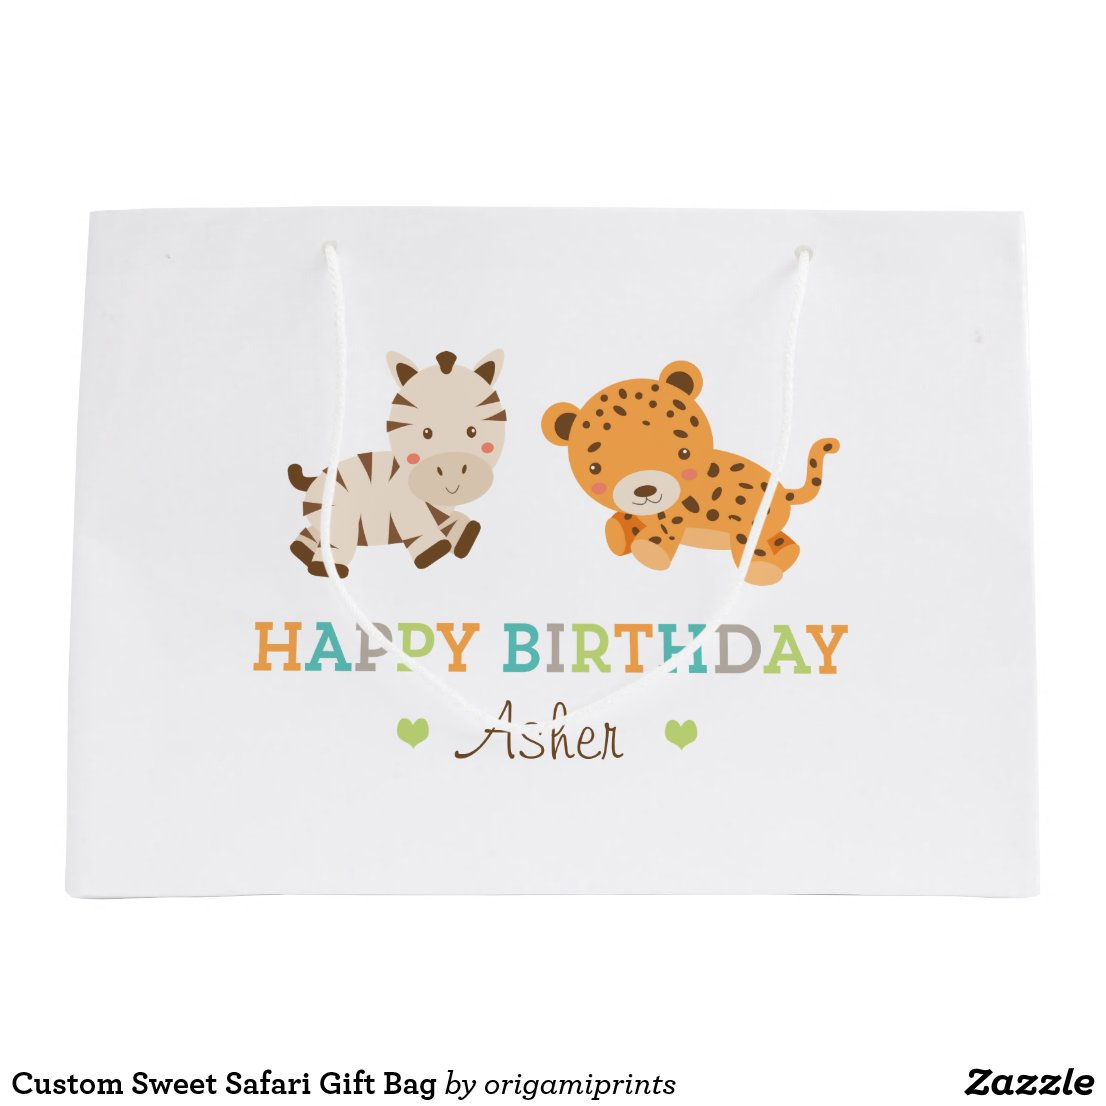 Custom Sweet Safari Gift Bag